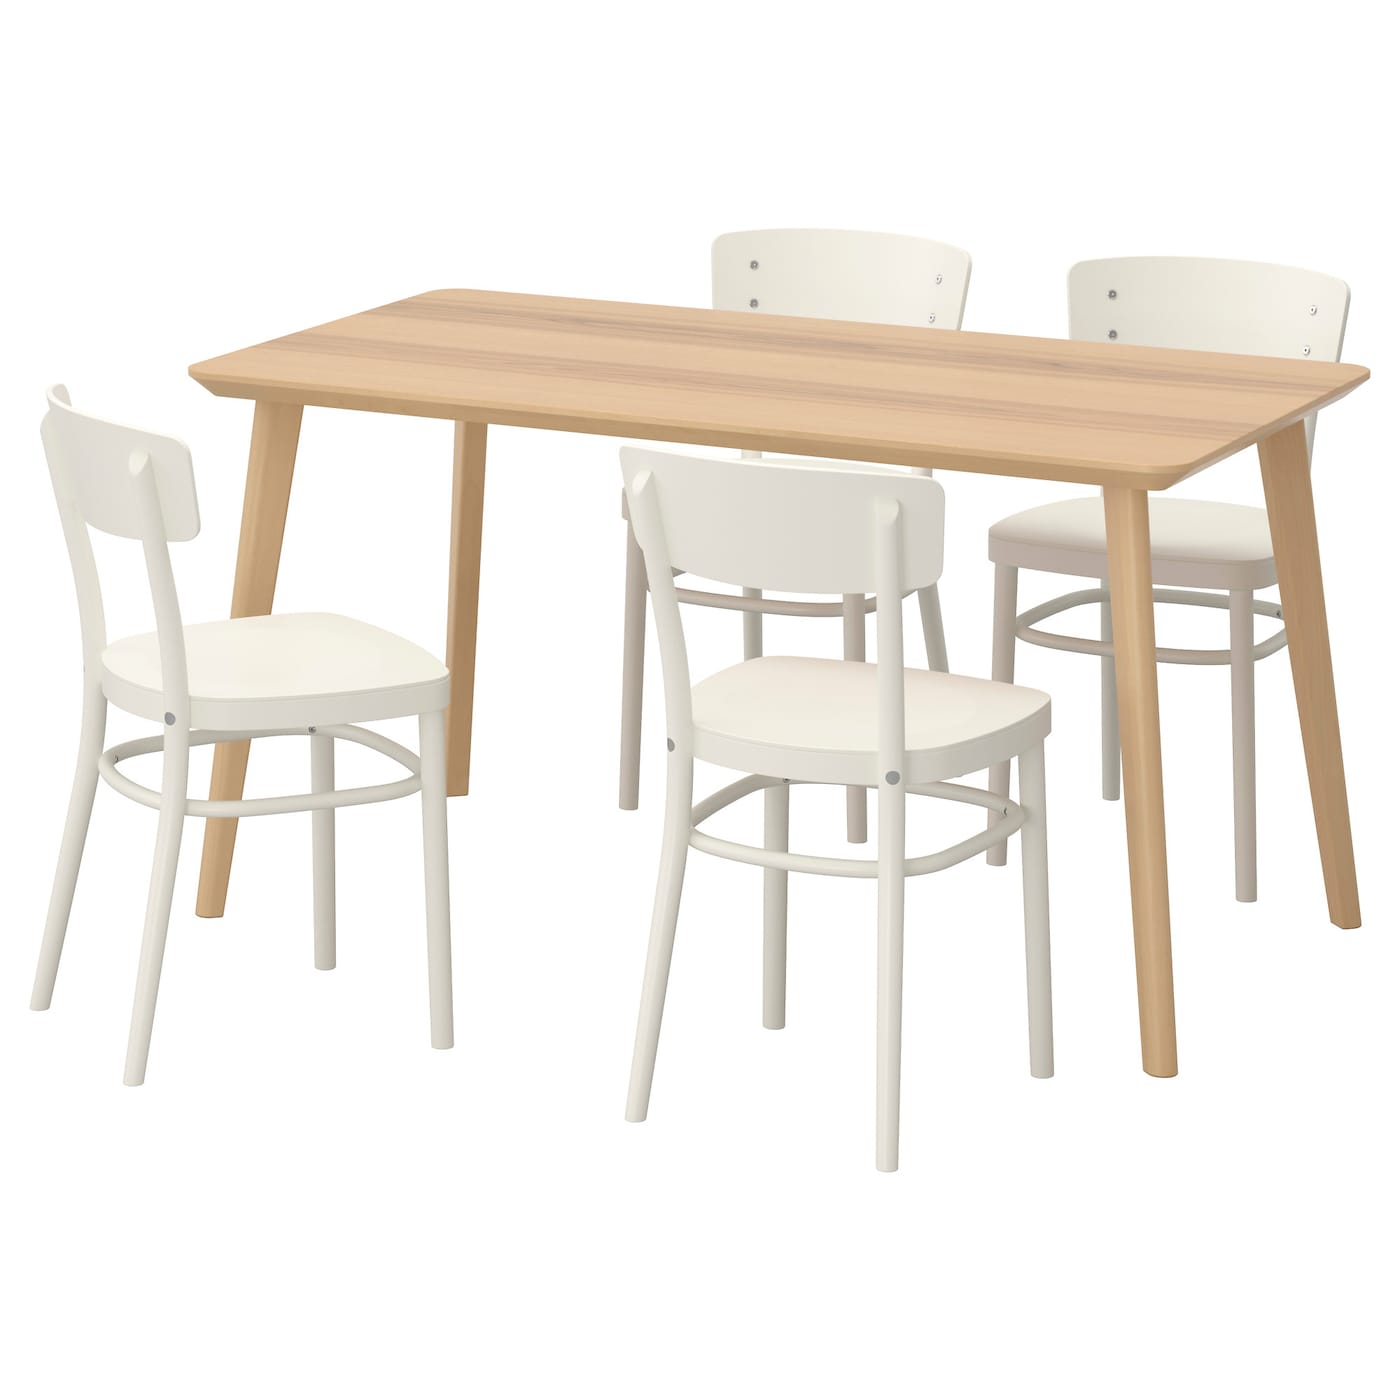 4 seater dining table chairs ikea - Table carree ikea ...